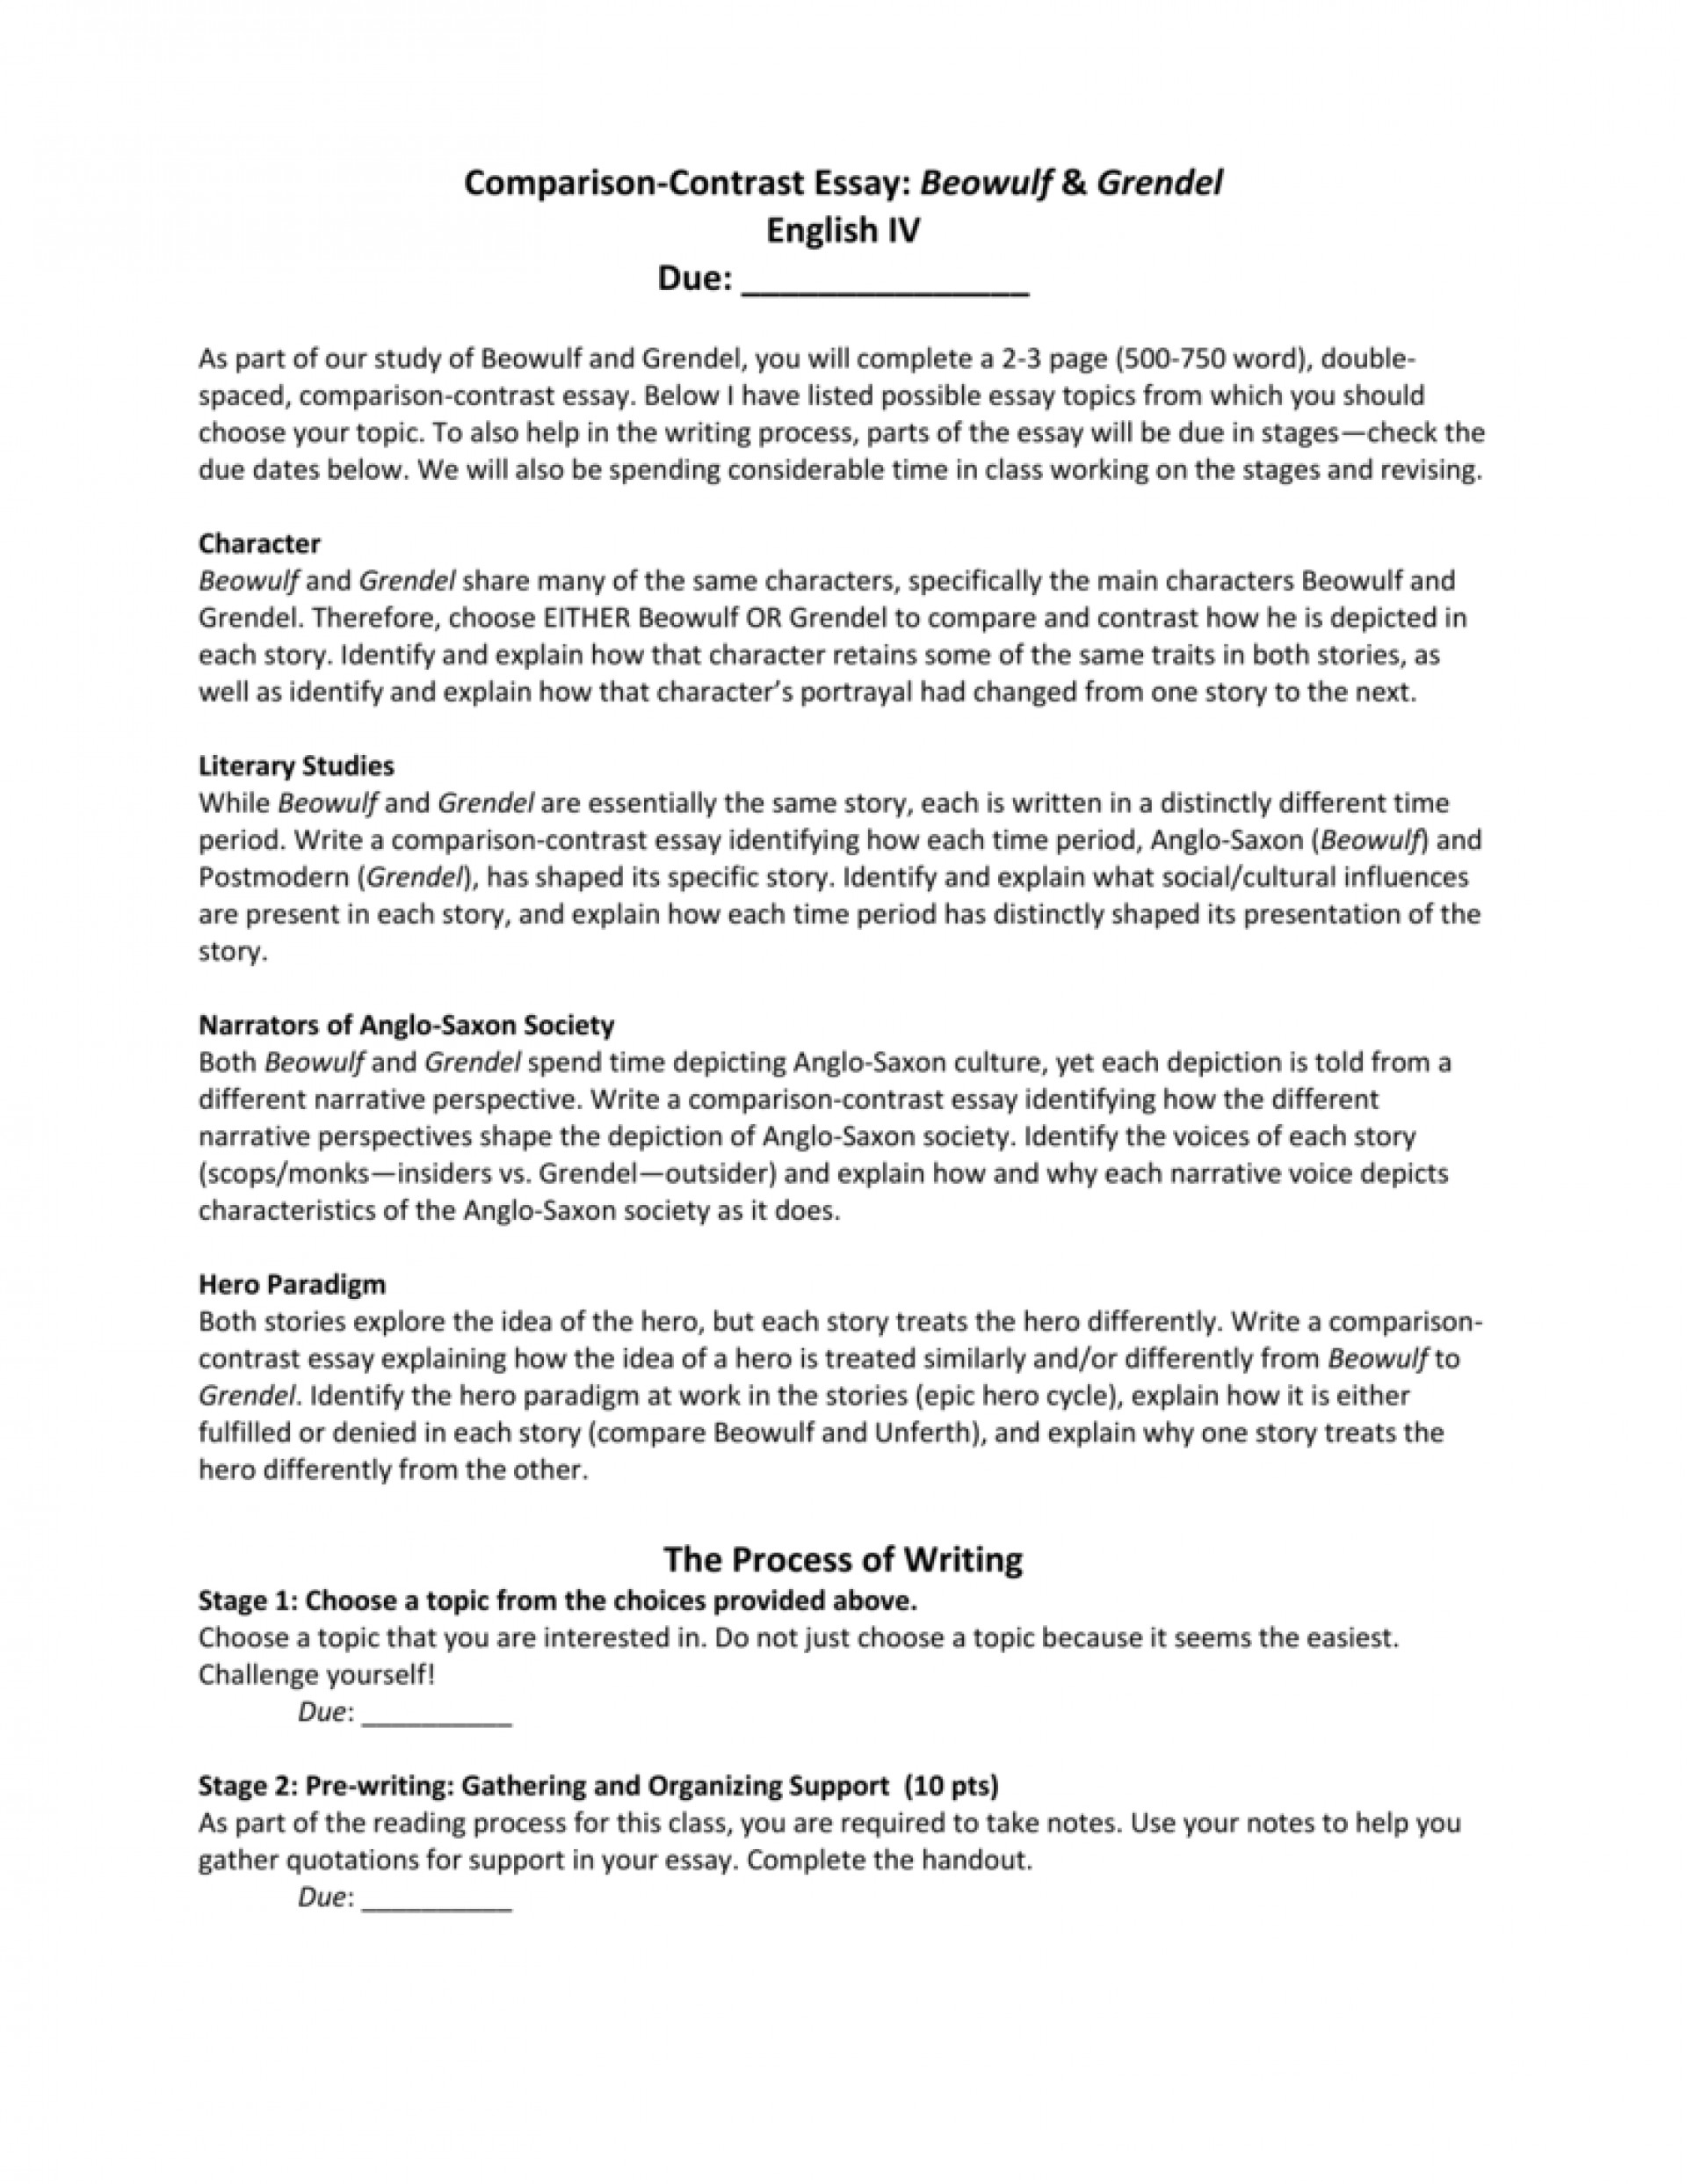 015 008061732 1 Essay Example Comparison And Awful Contrast Rubric Compare Template Word 1920